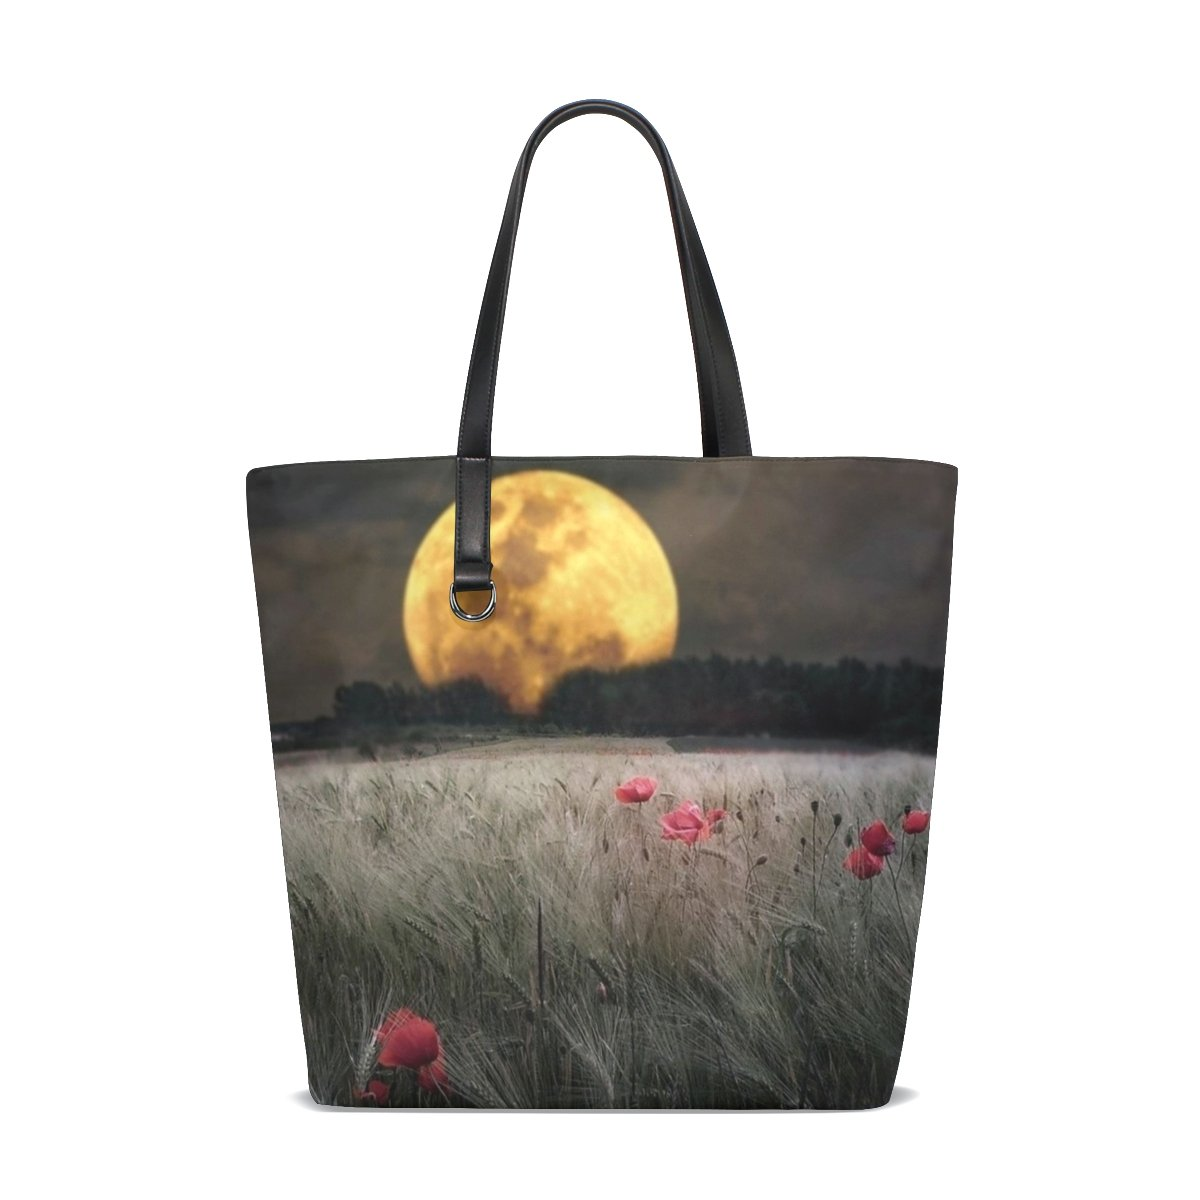 Moon Sky Field Double Sides Printing Daily Tote Bag Shopping Handle Bags for Women Girls